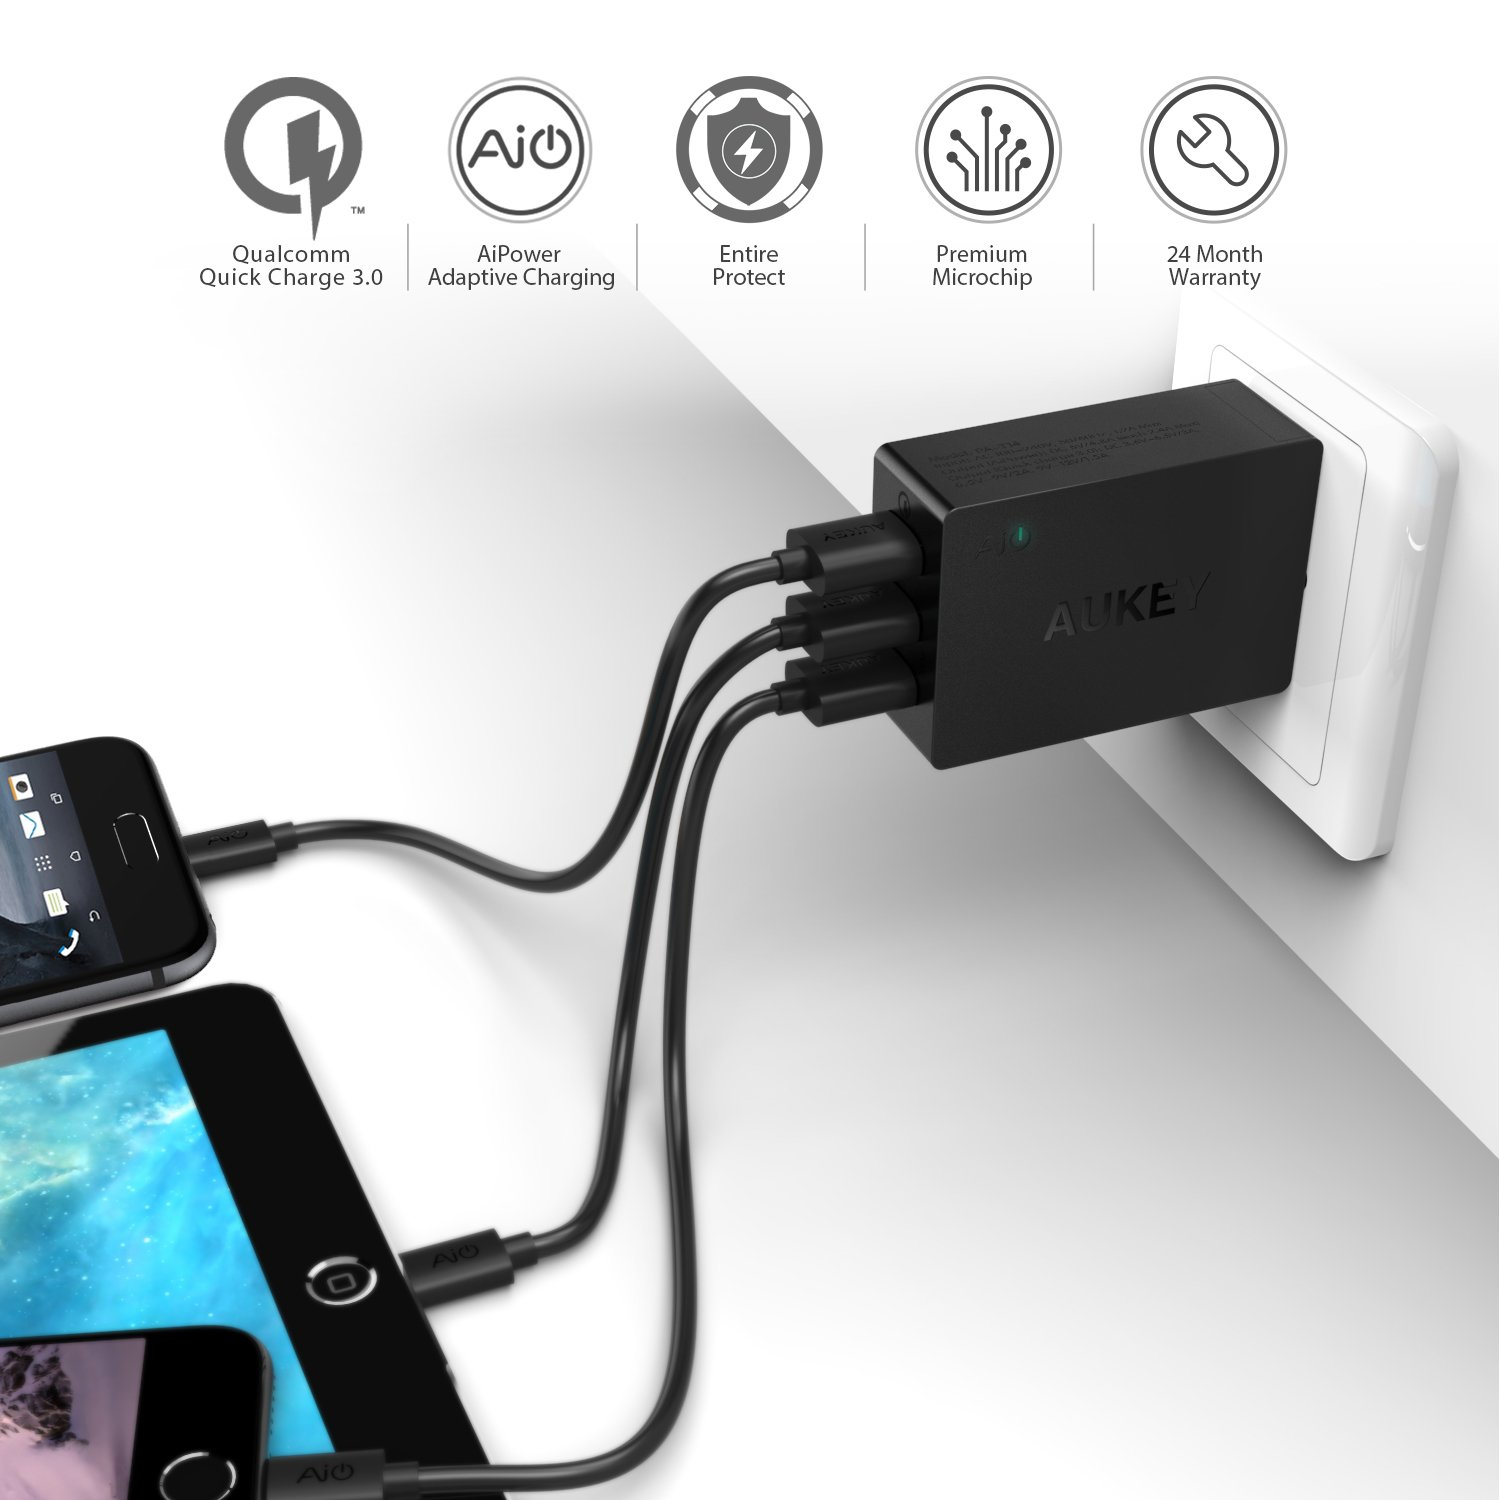 iphone quick charge. amazon.com: quick charge 3.0 aukey 43.5w usb wall charger with 3 ports \u0026 foldable plug for samsung galaxy note8, lg g6 / v30, iphone x 8 plus and iphone b